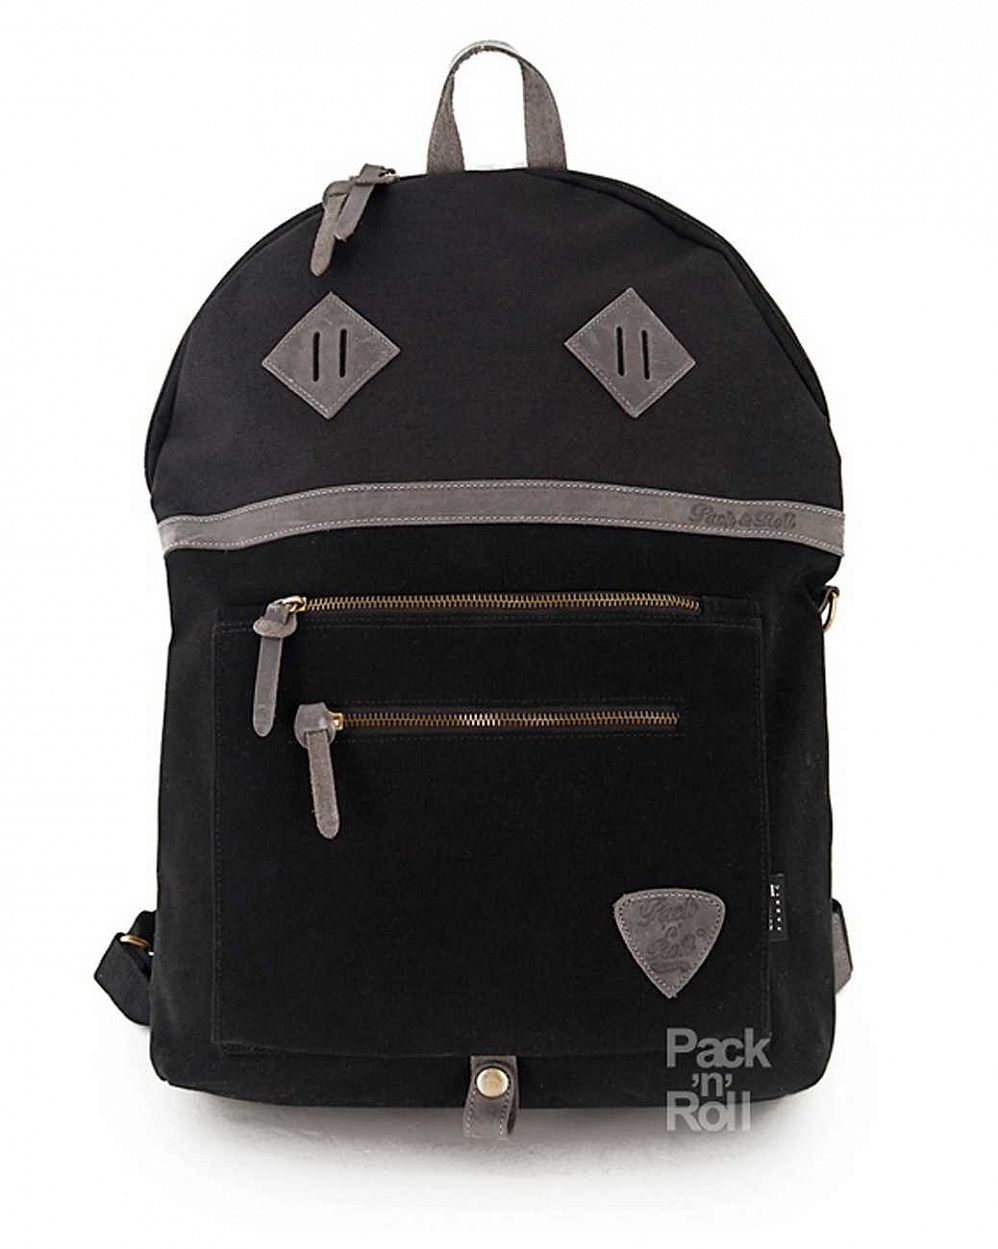 купить Рюкзак Pack n Roll Over Backpack 25 oz canvas/leather Black в Москве